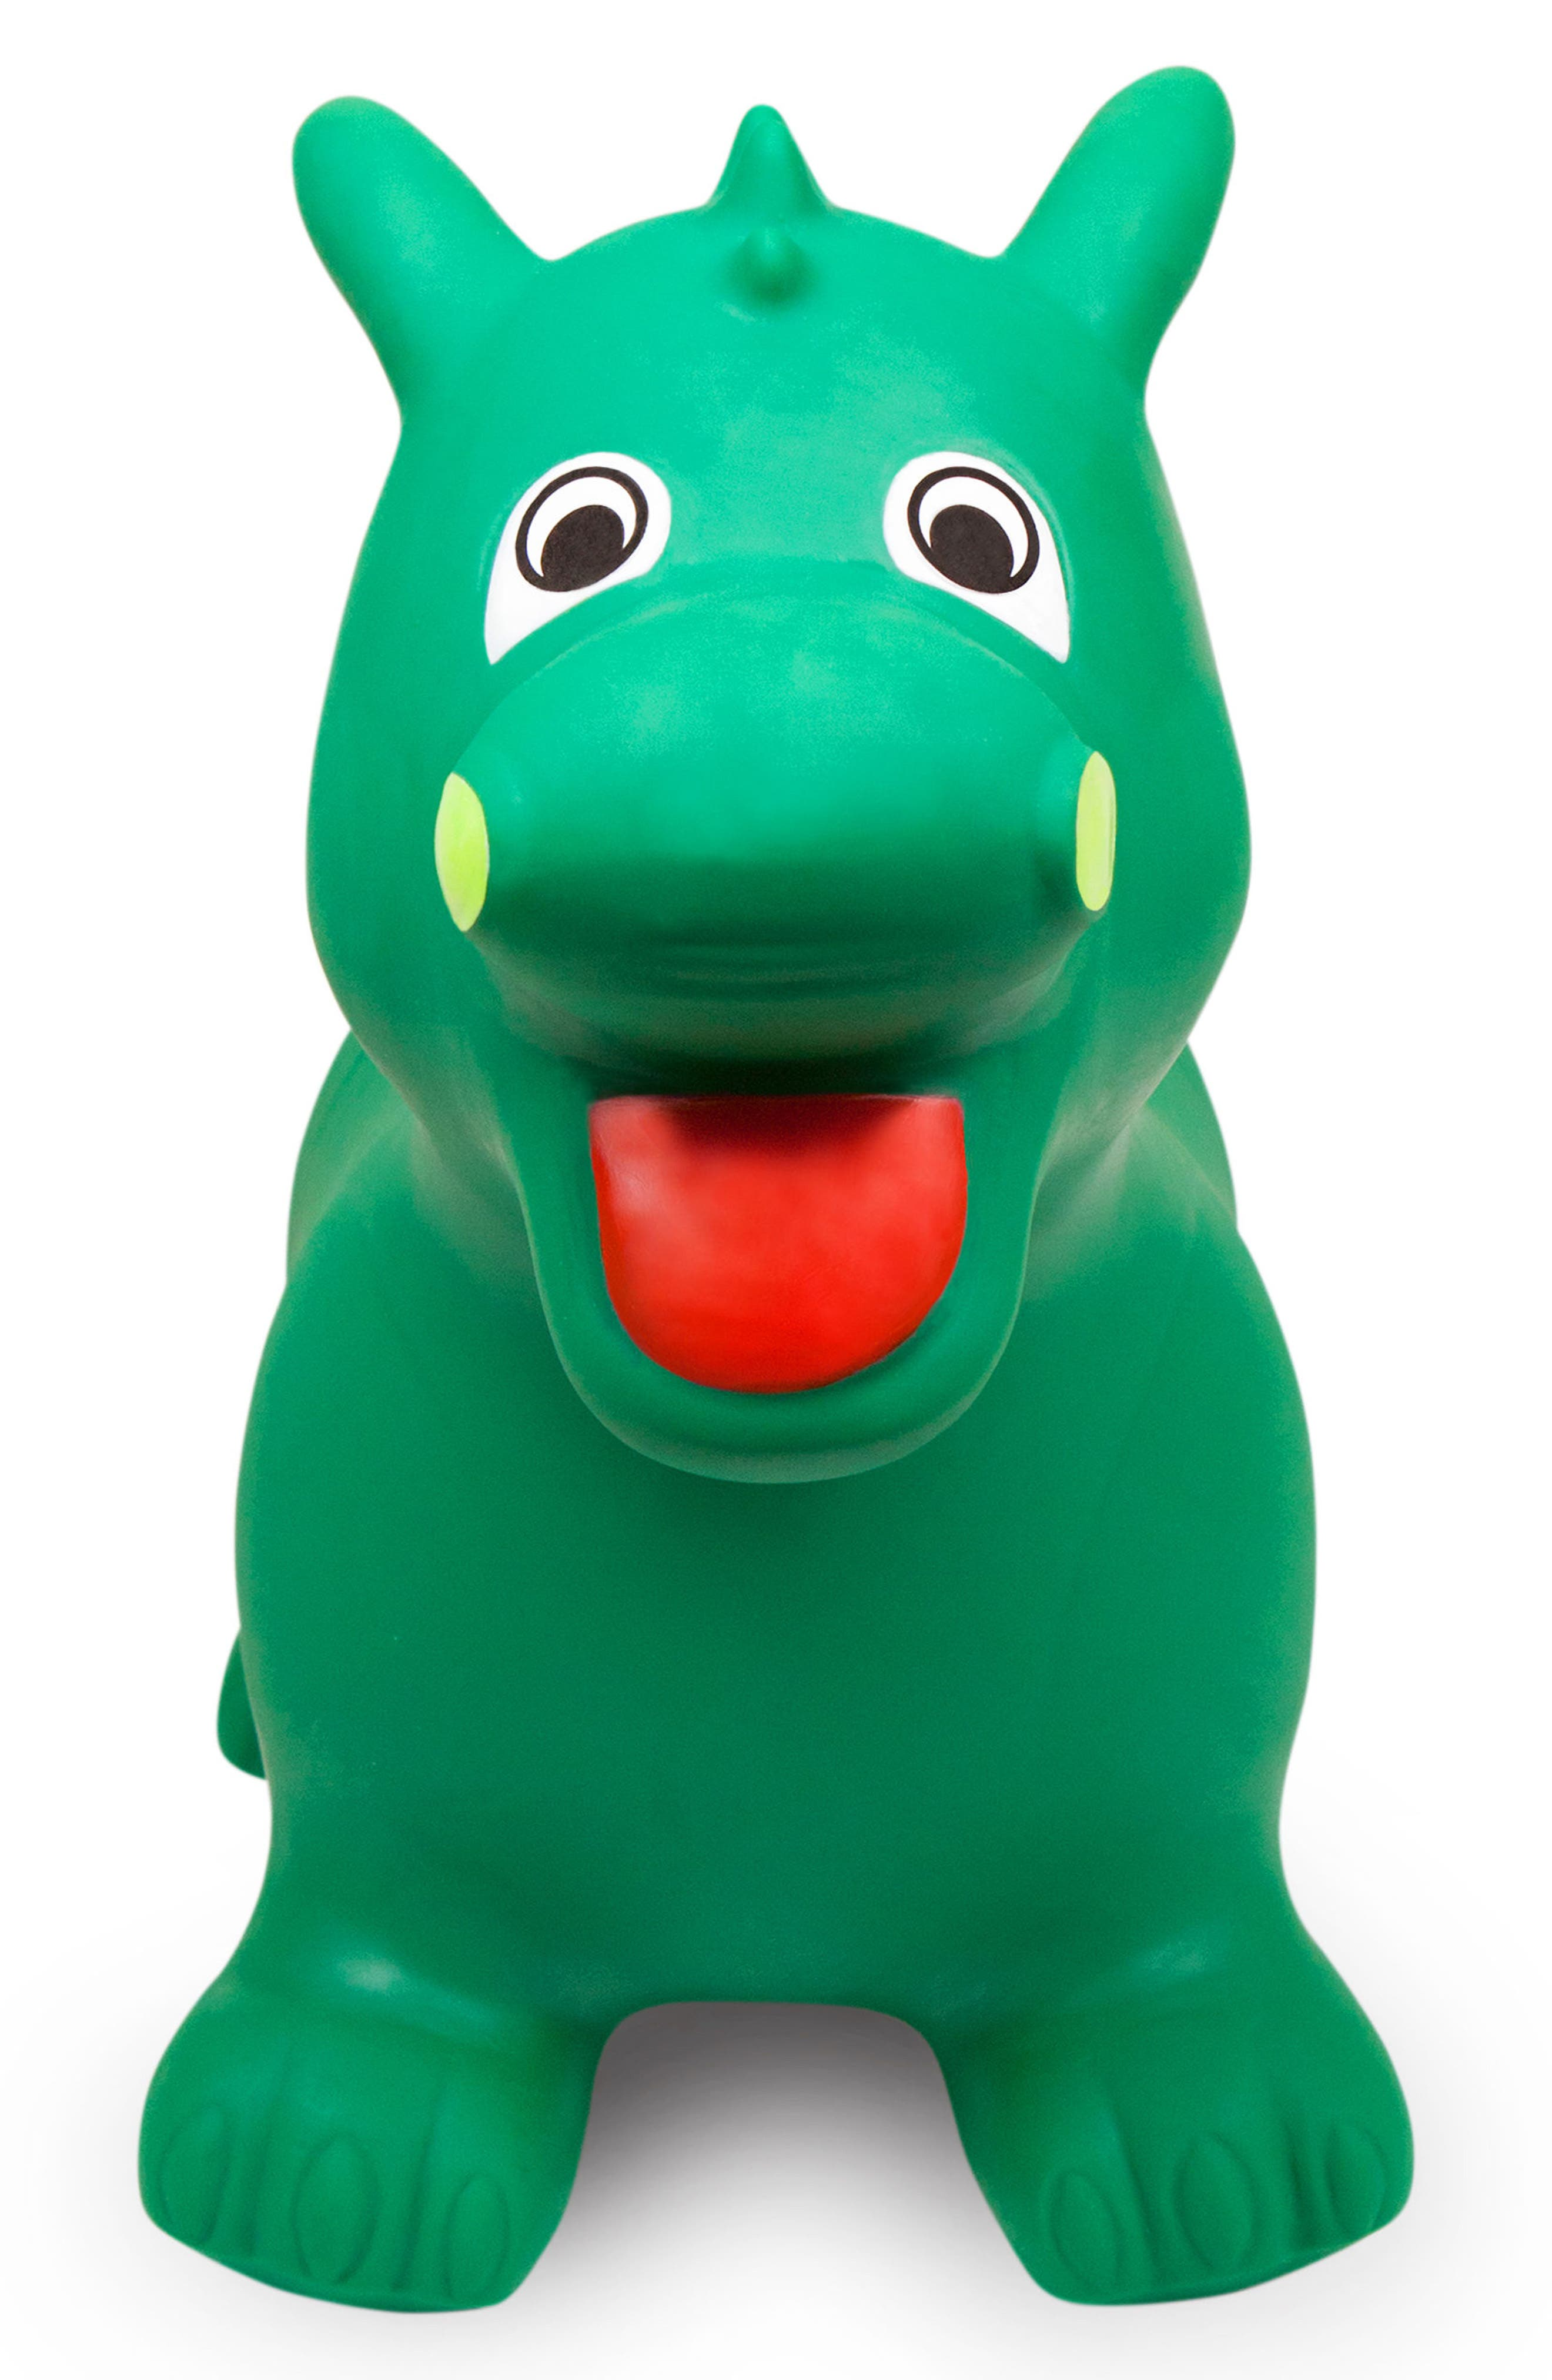 Dragon Bouncy Ride-On Toy,                             Main thumbnail 1, color,                             302